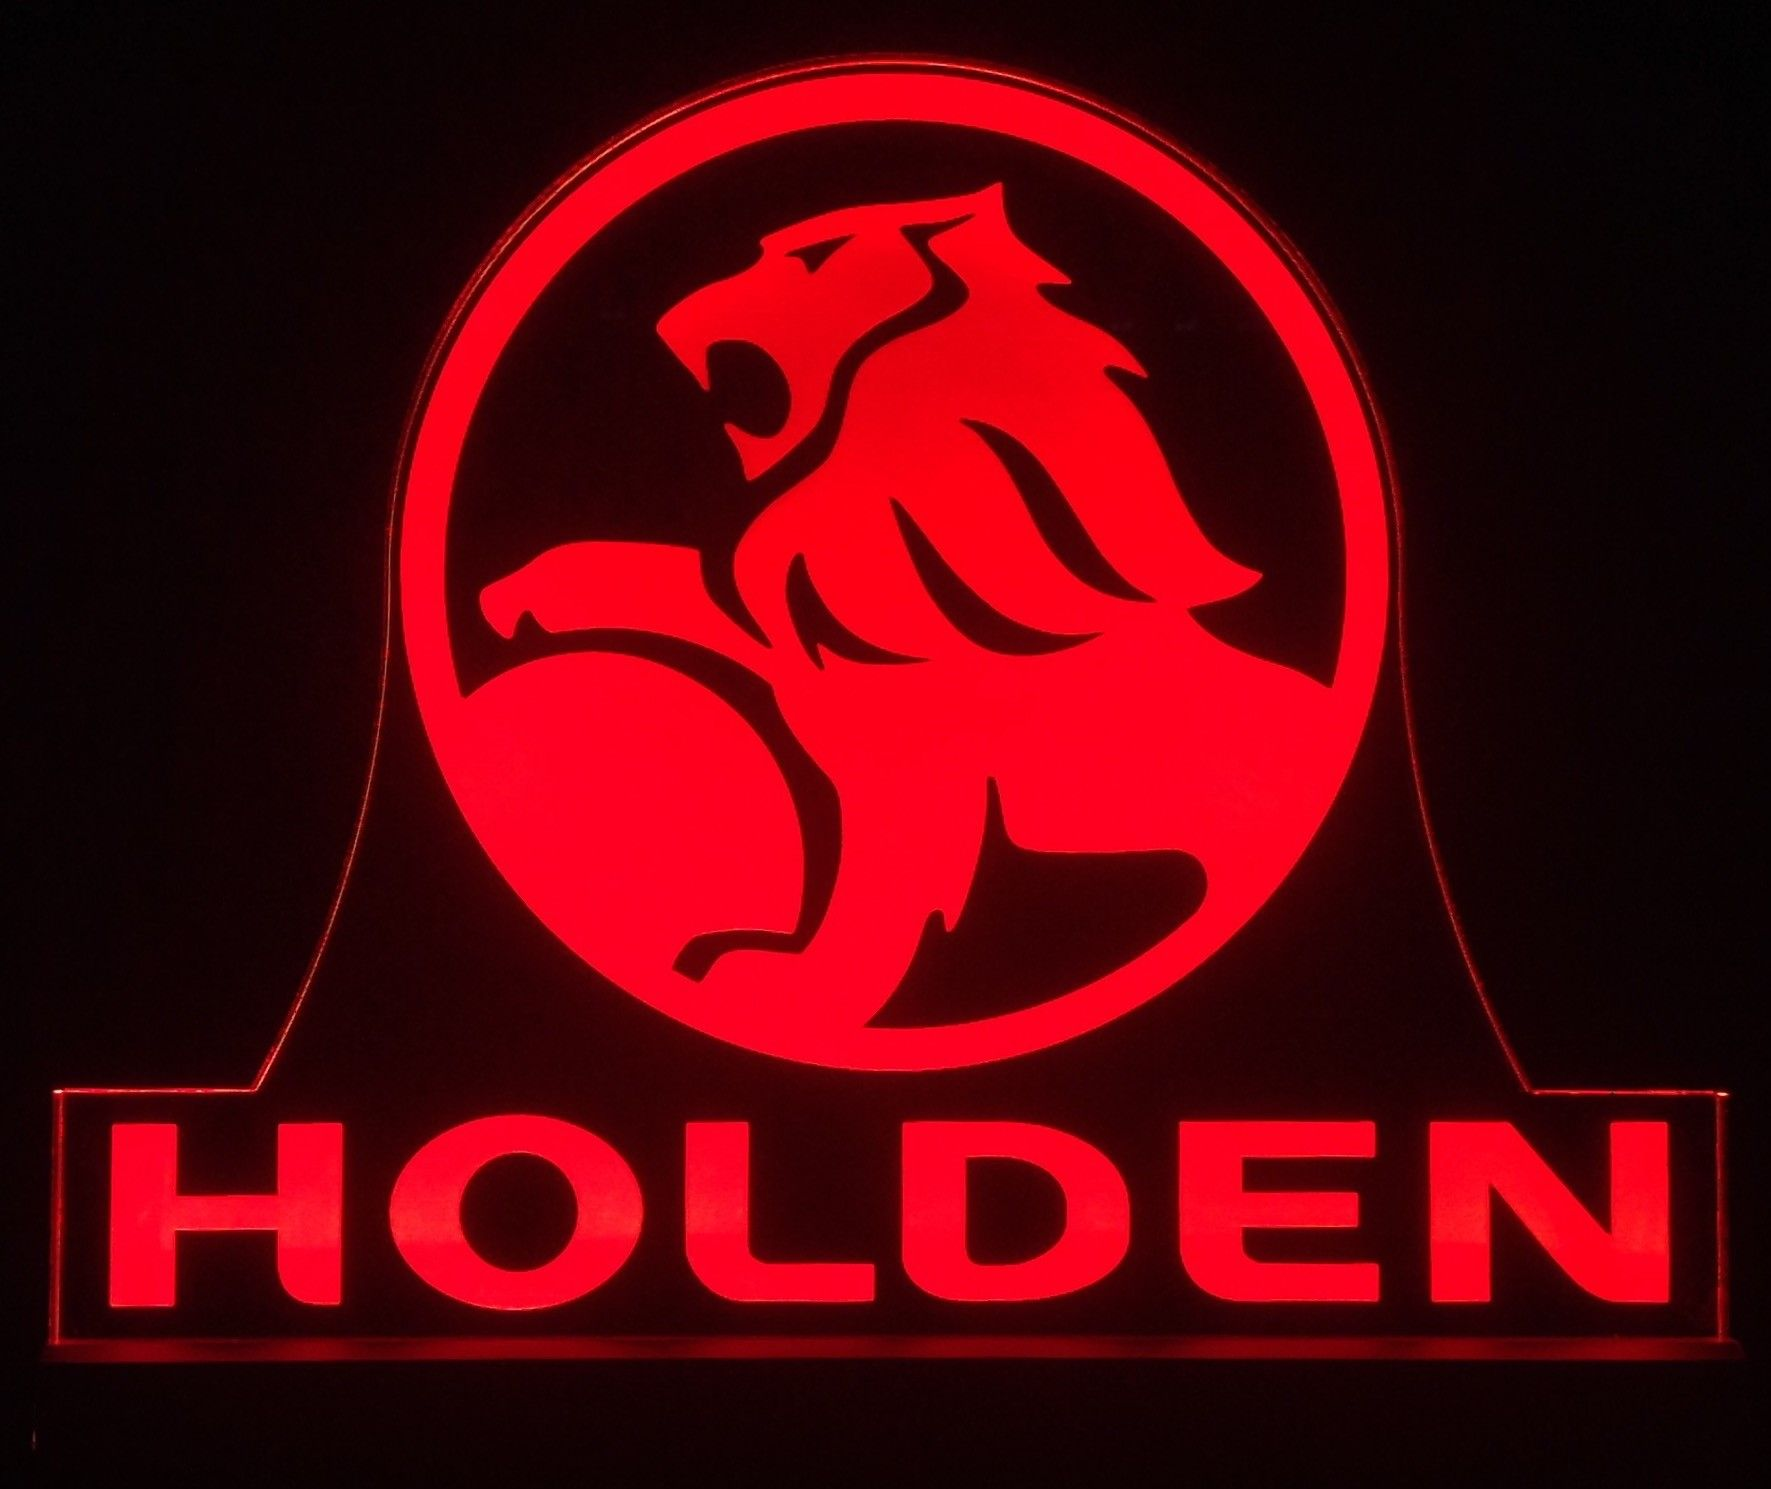 Holden Logo - Holden Logo - JB Edgelit Signs | Custom LED SignsJB Edgelit Signs ...